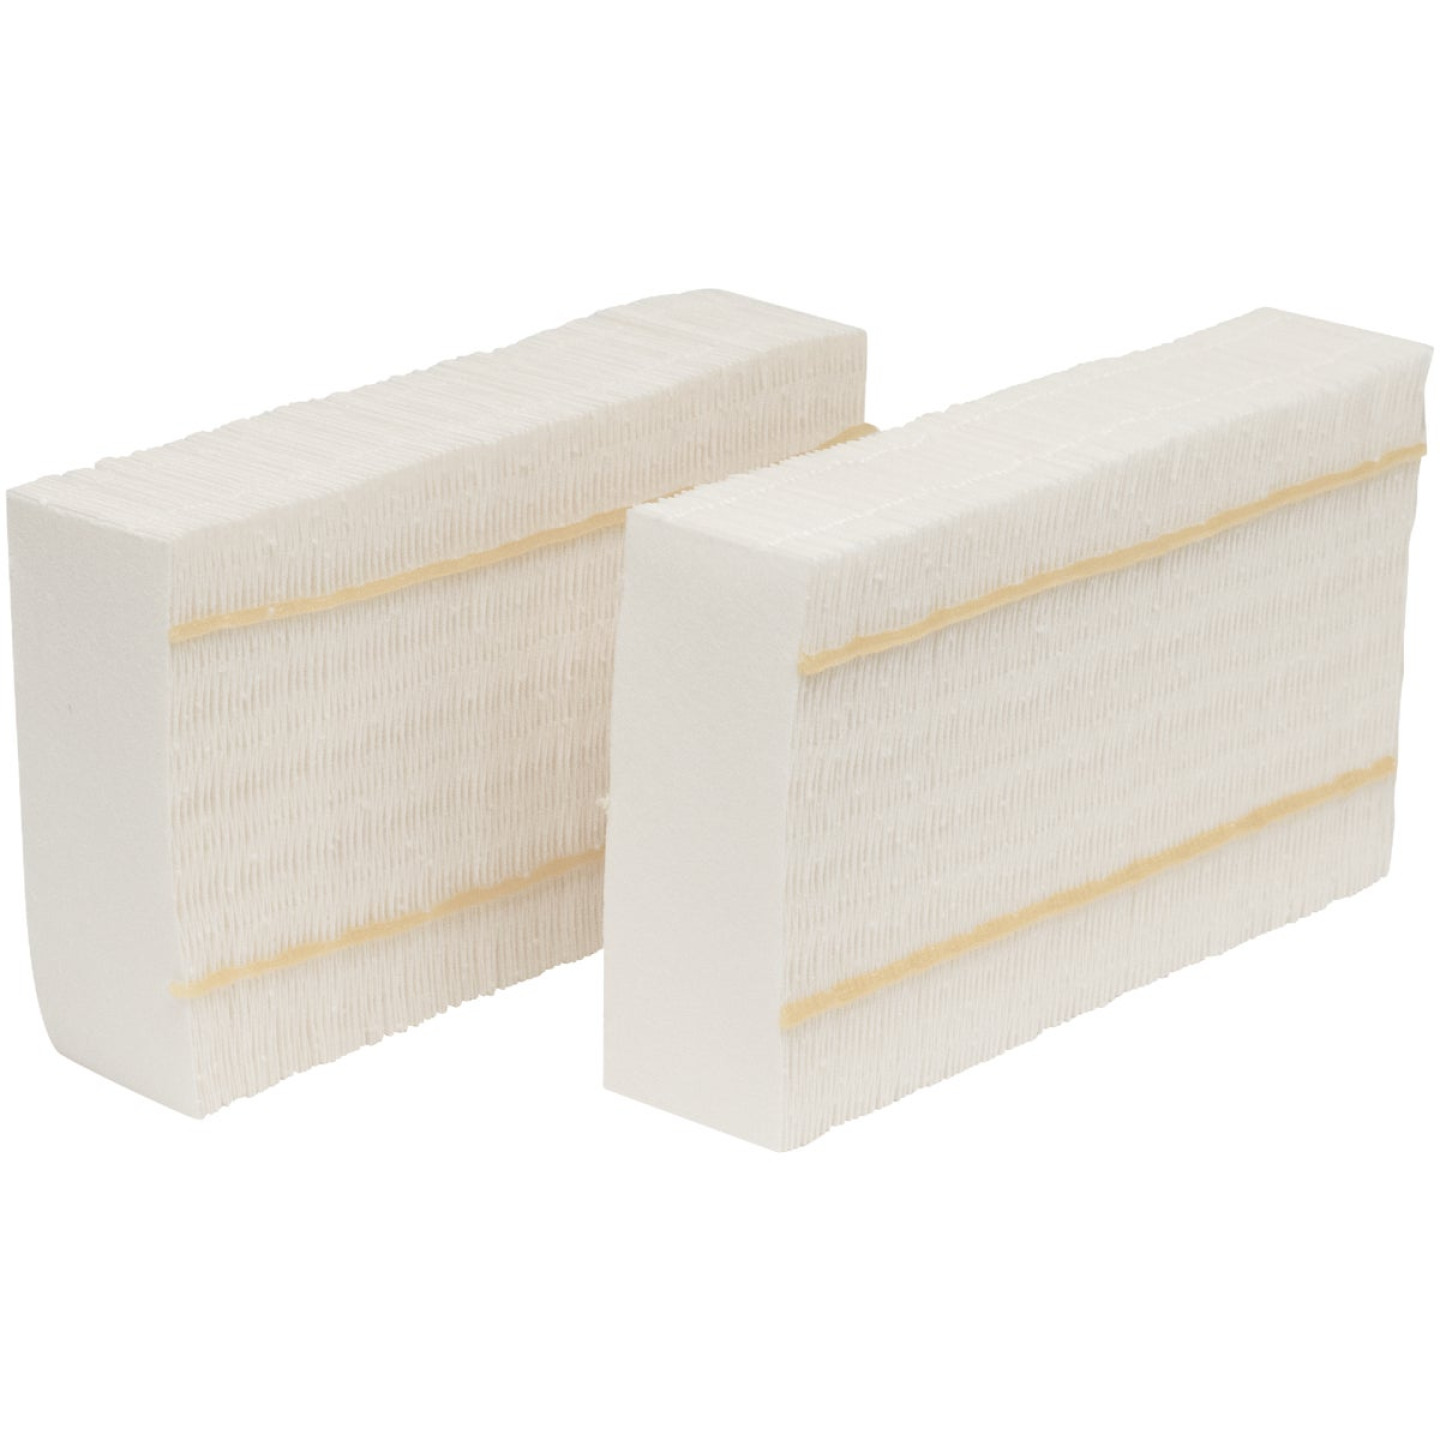 Essick Air HDC2R Humidifier Wick Filter (2-Pack) Image 2